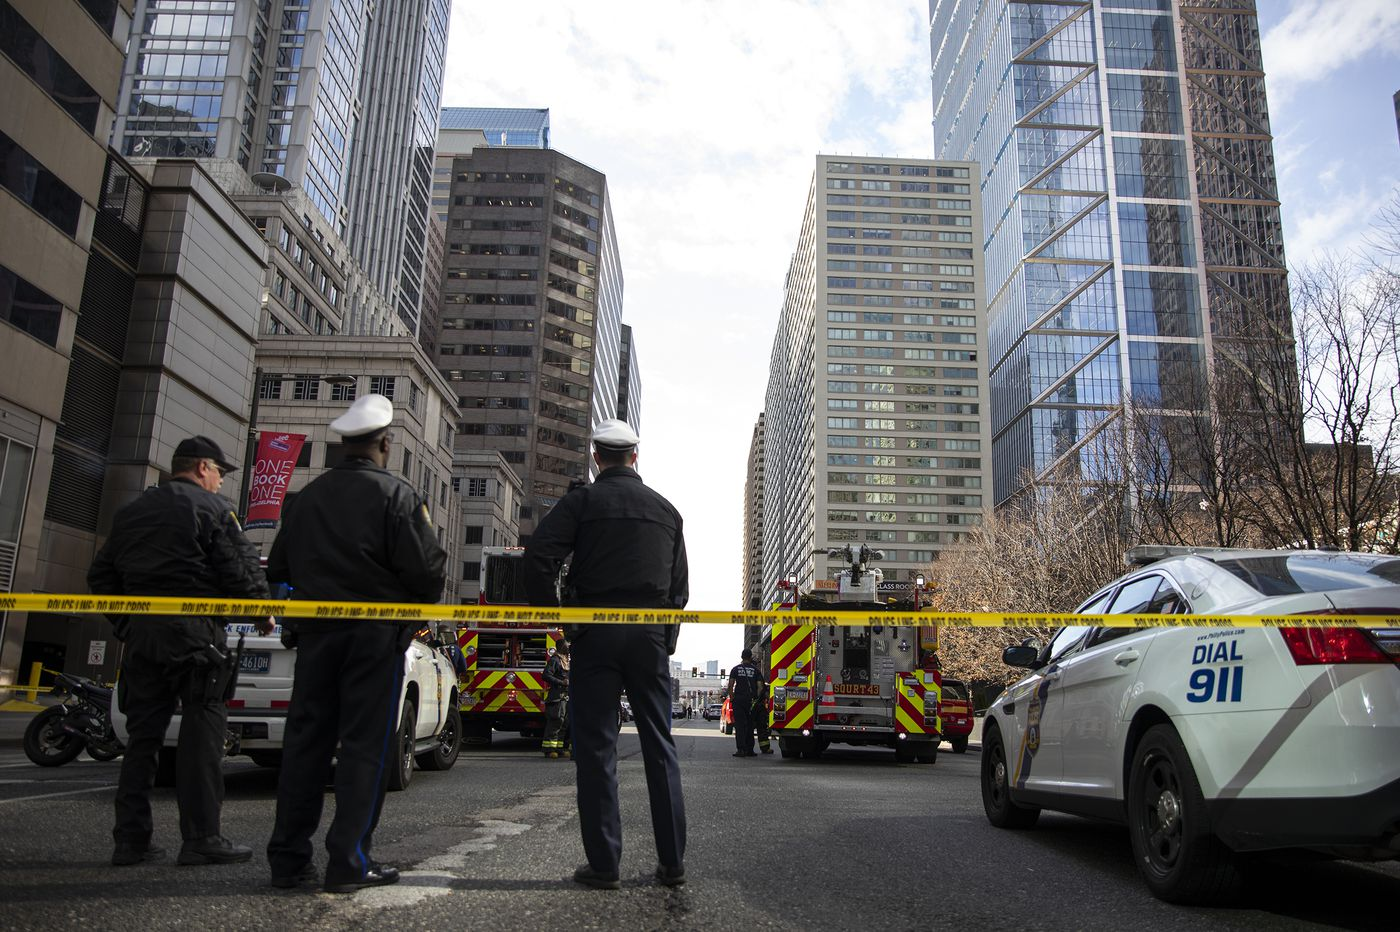 Man found dead of self-inflicted gunshot wound in Center City apartment building, barricade lifted